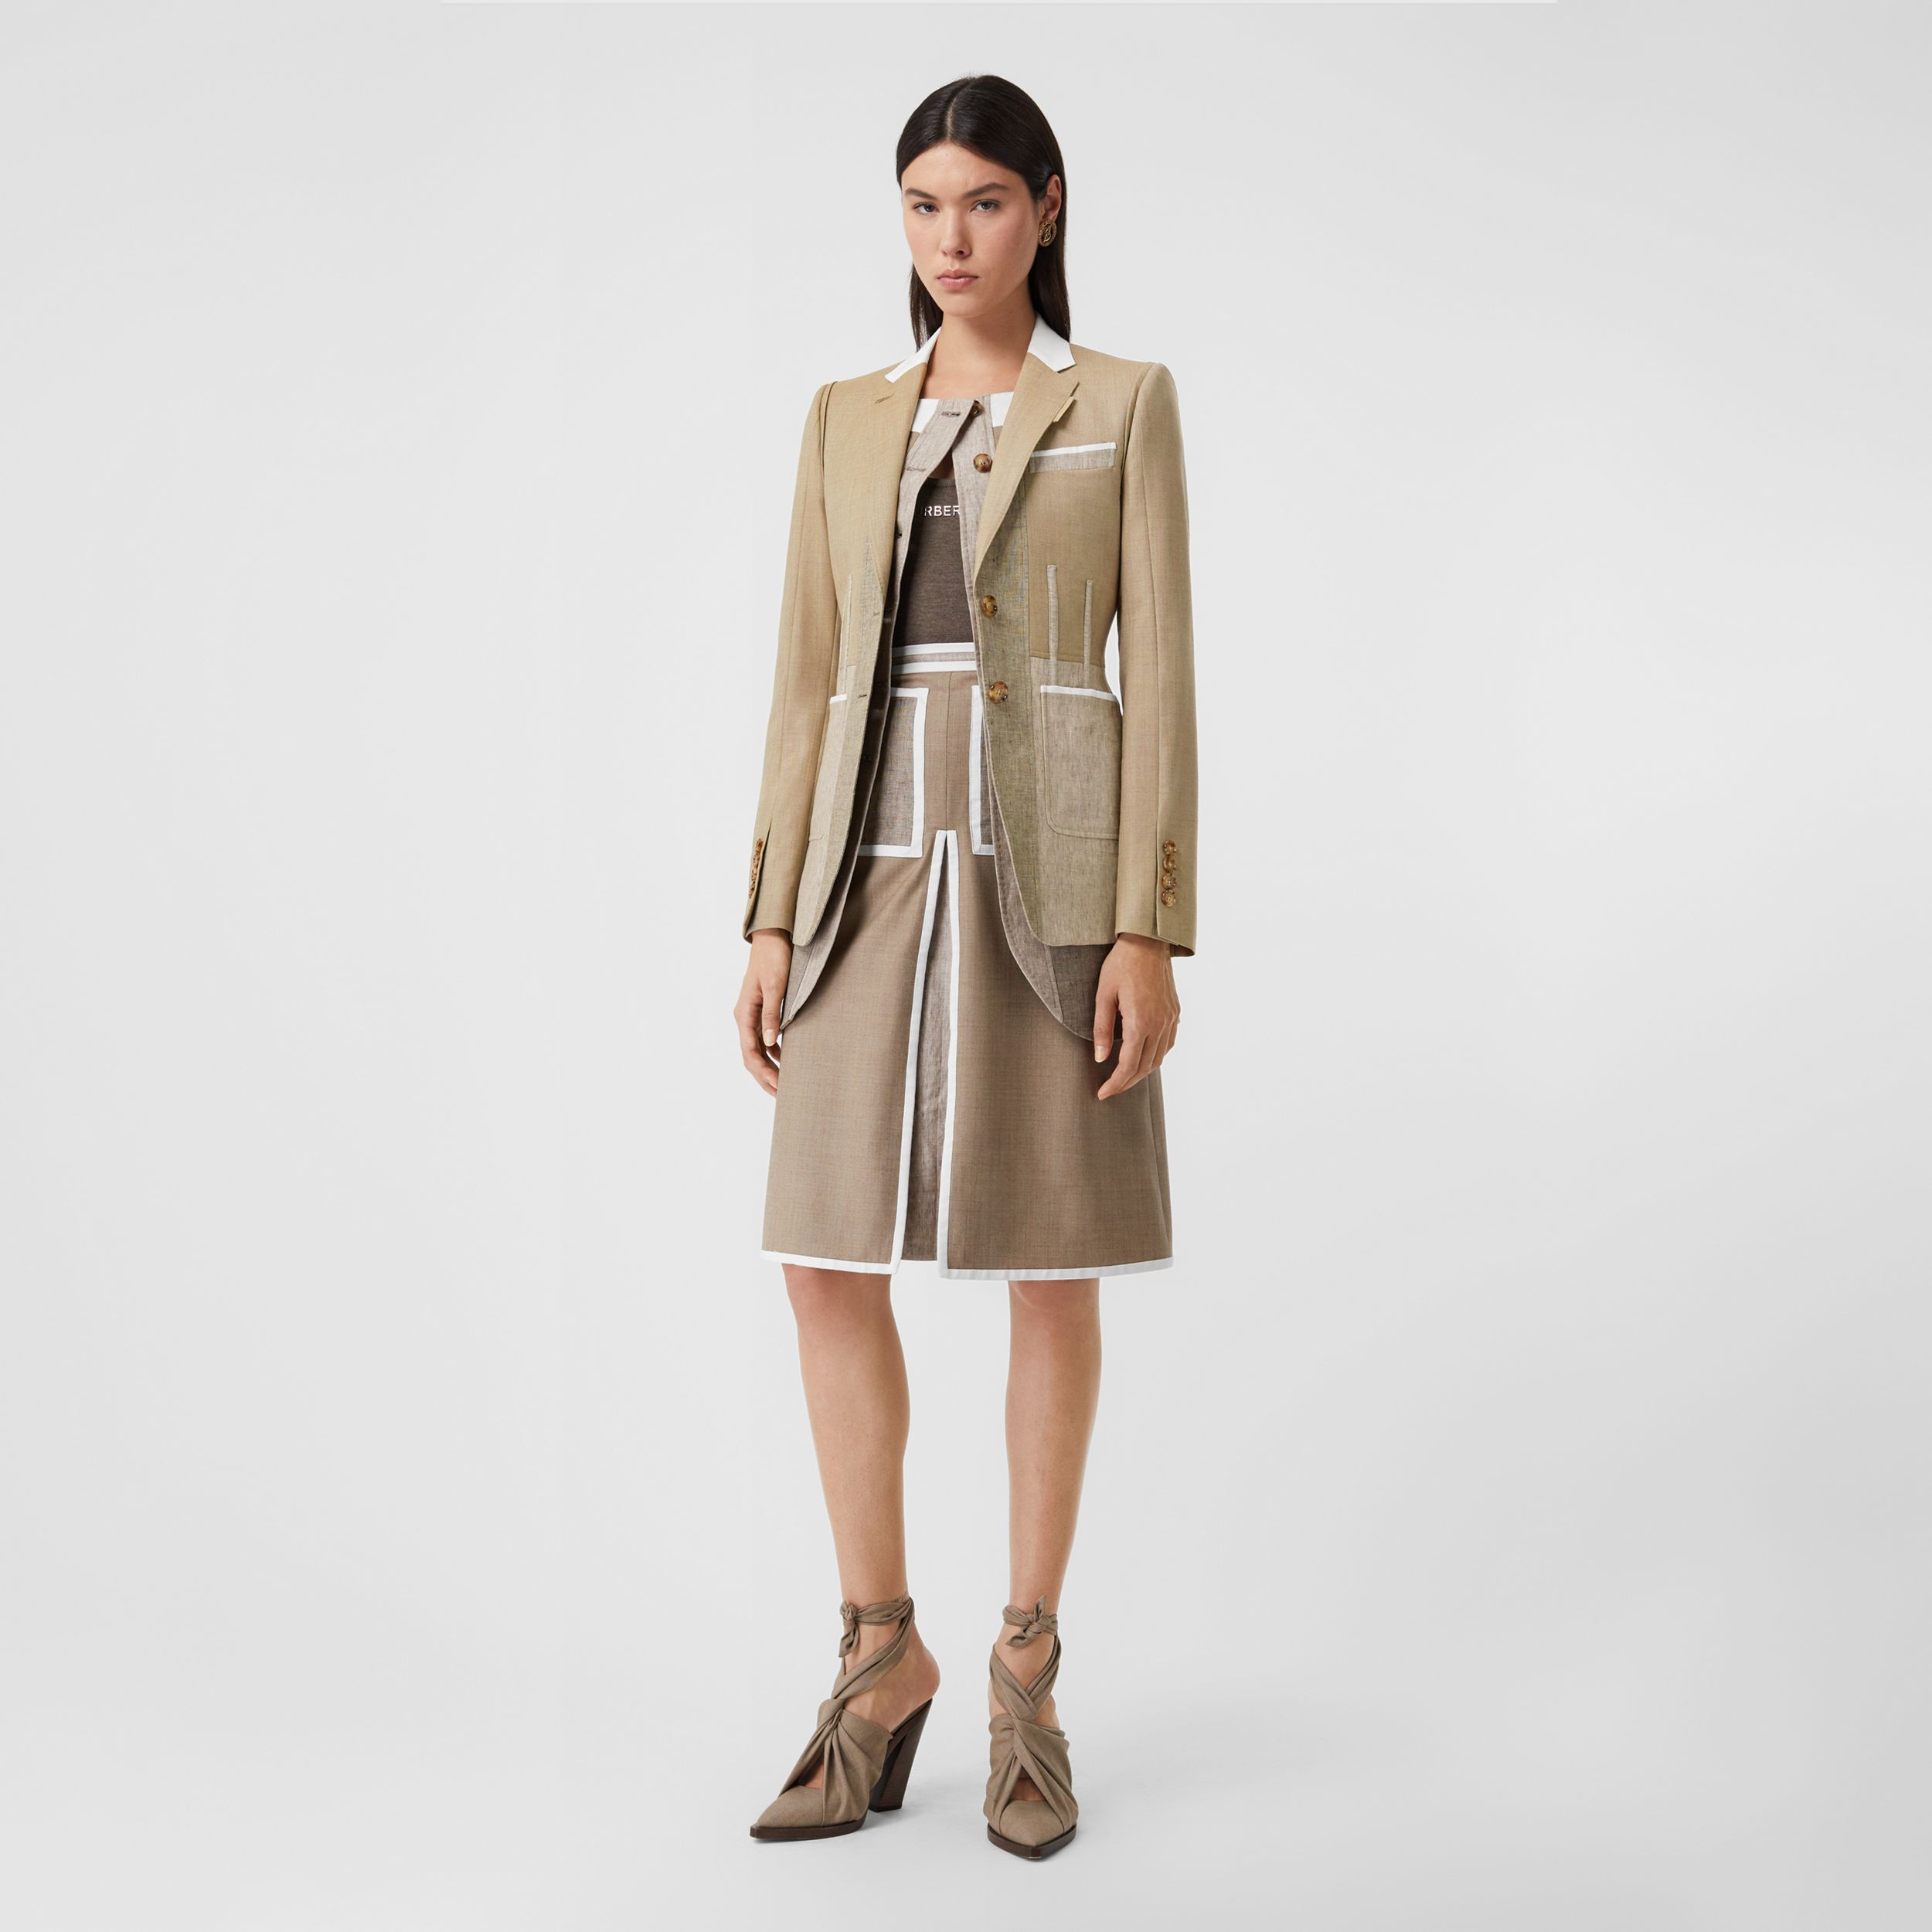 Contrast Seam Wool Cashmere and Linen Blazer in Pecan Melange - Women | Burberry - 1